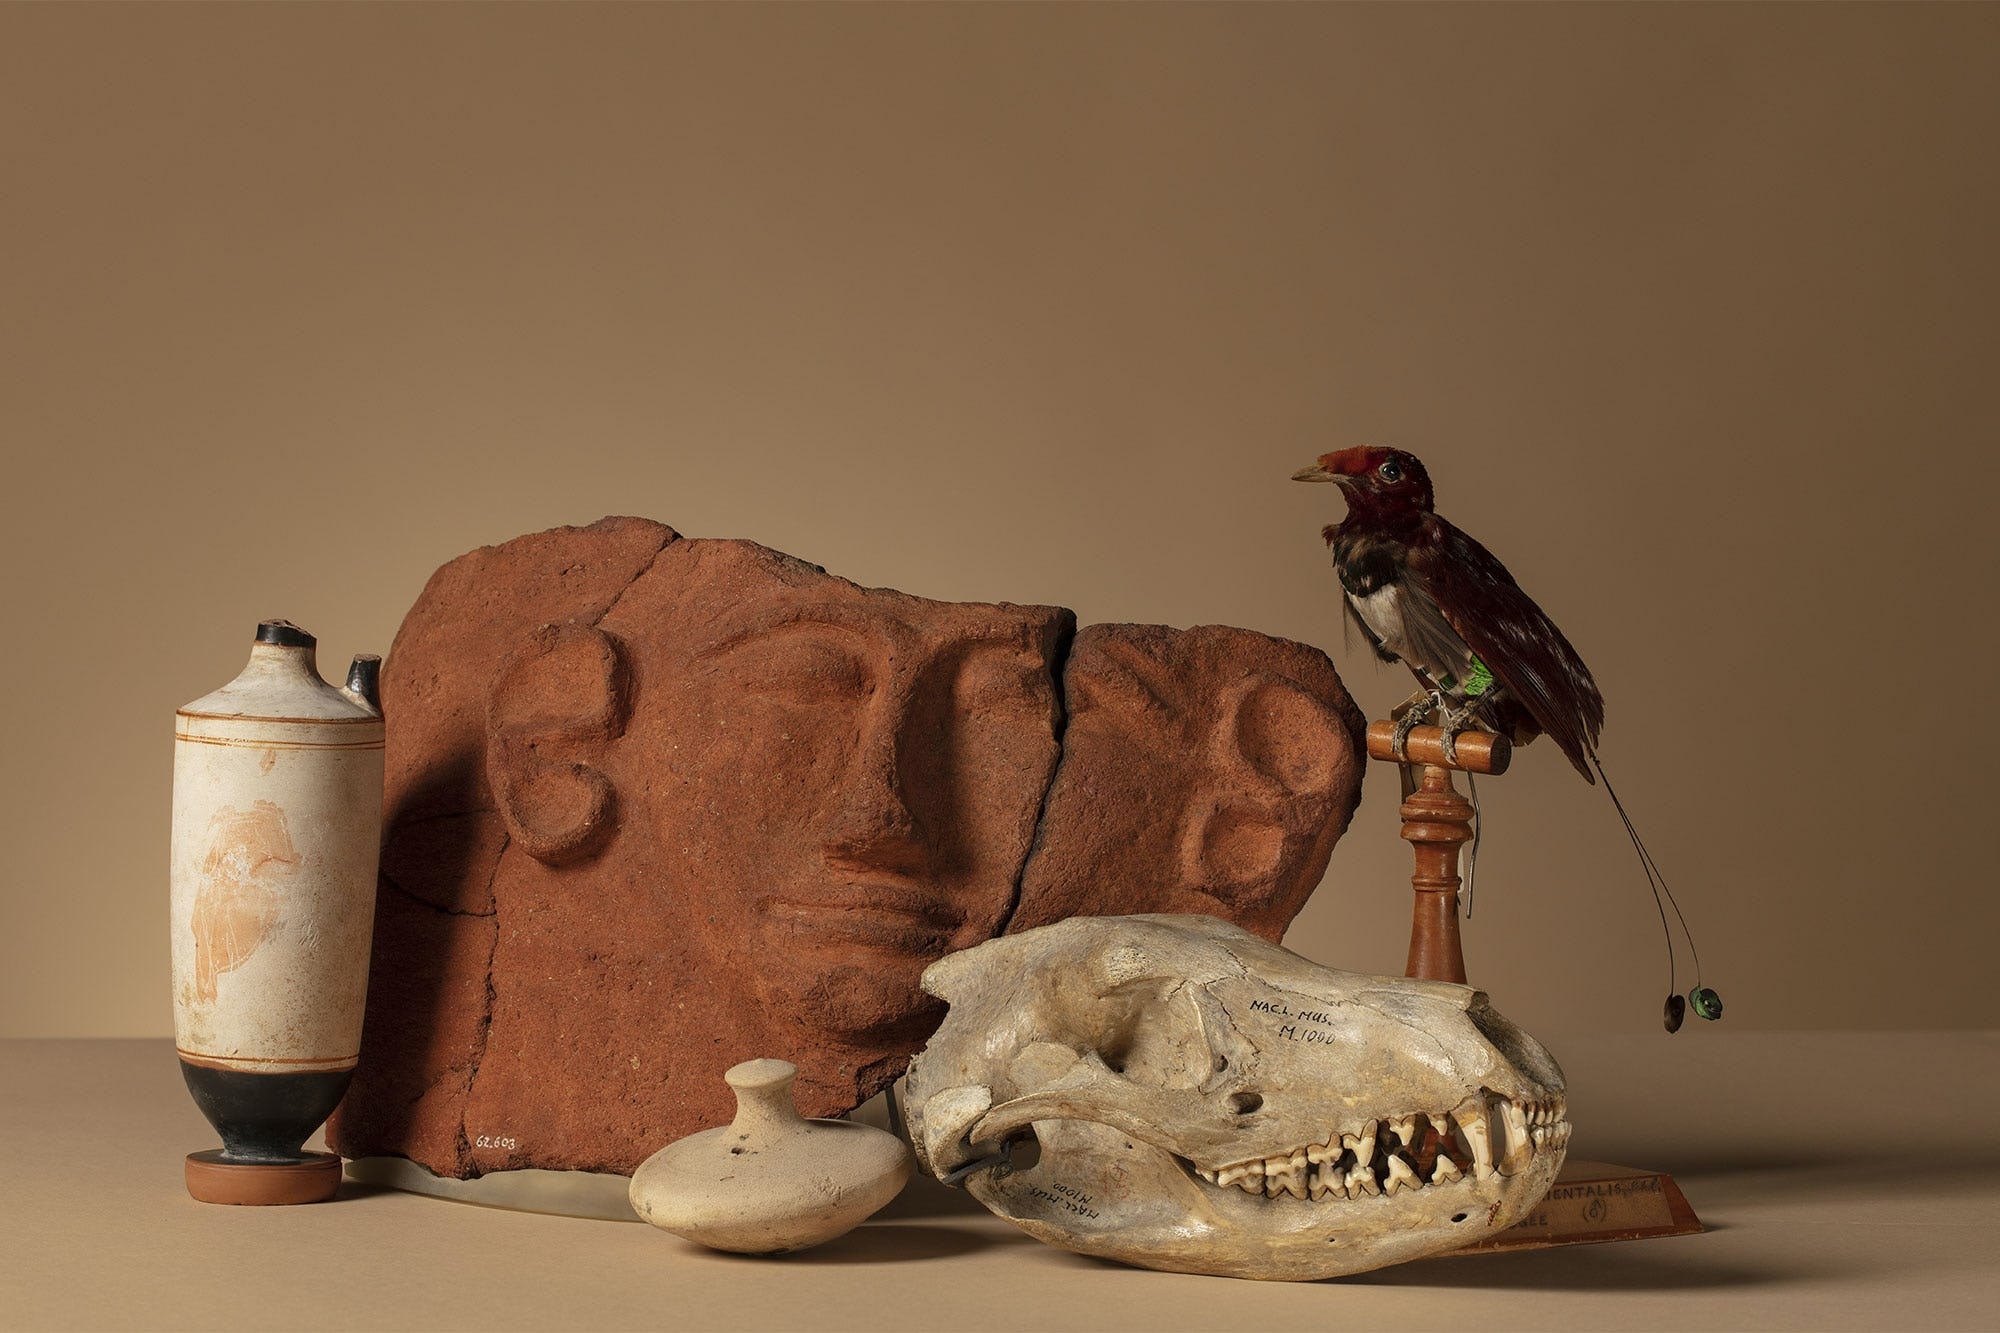 Still life of Museum artifacts